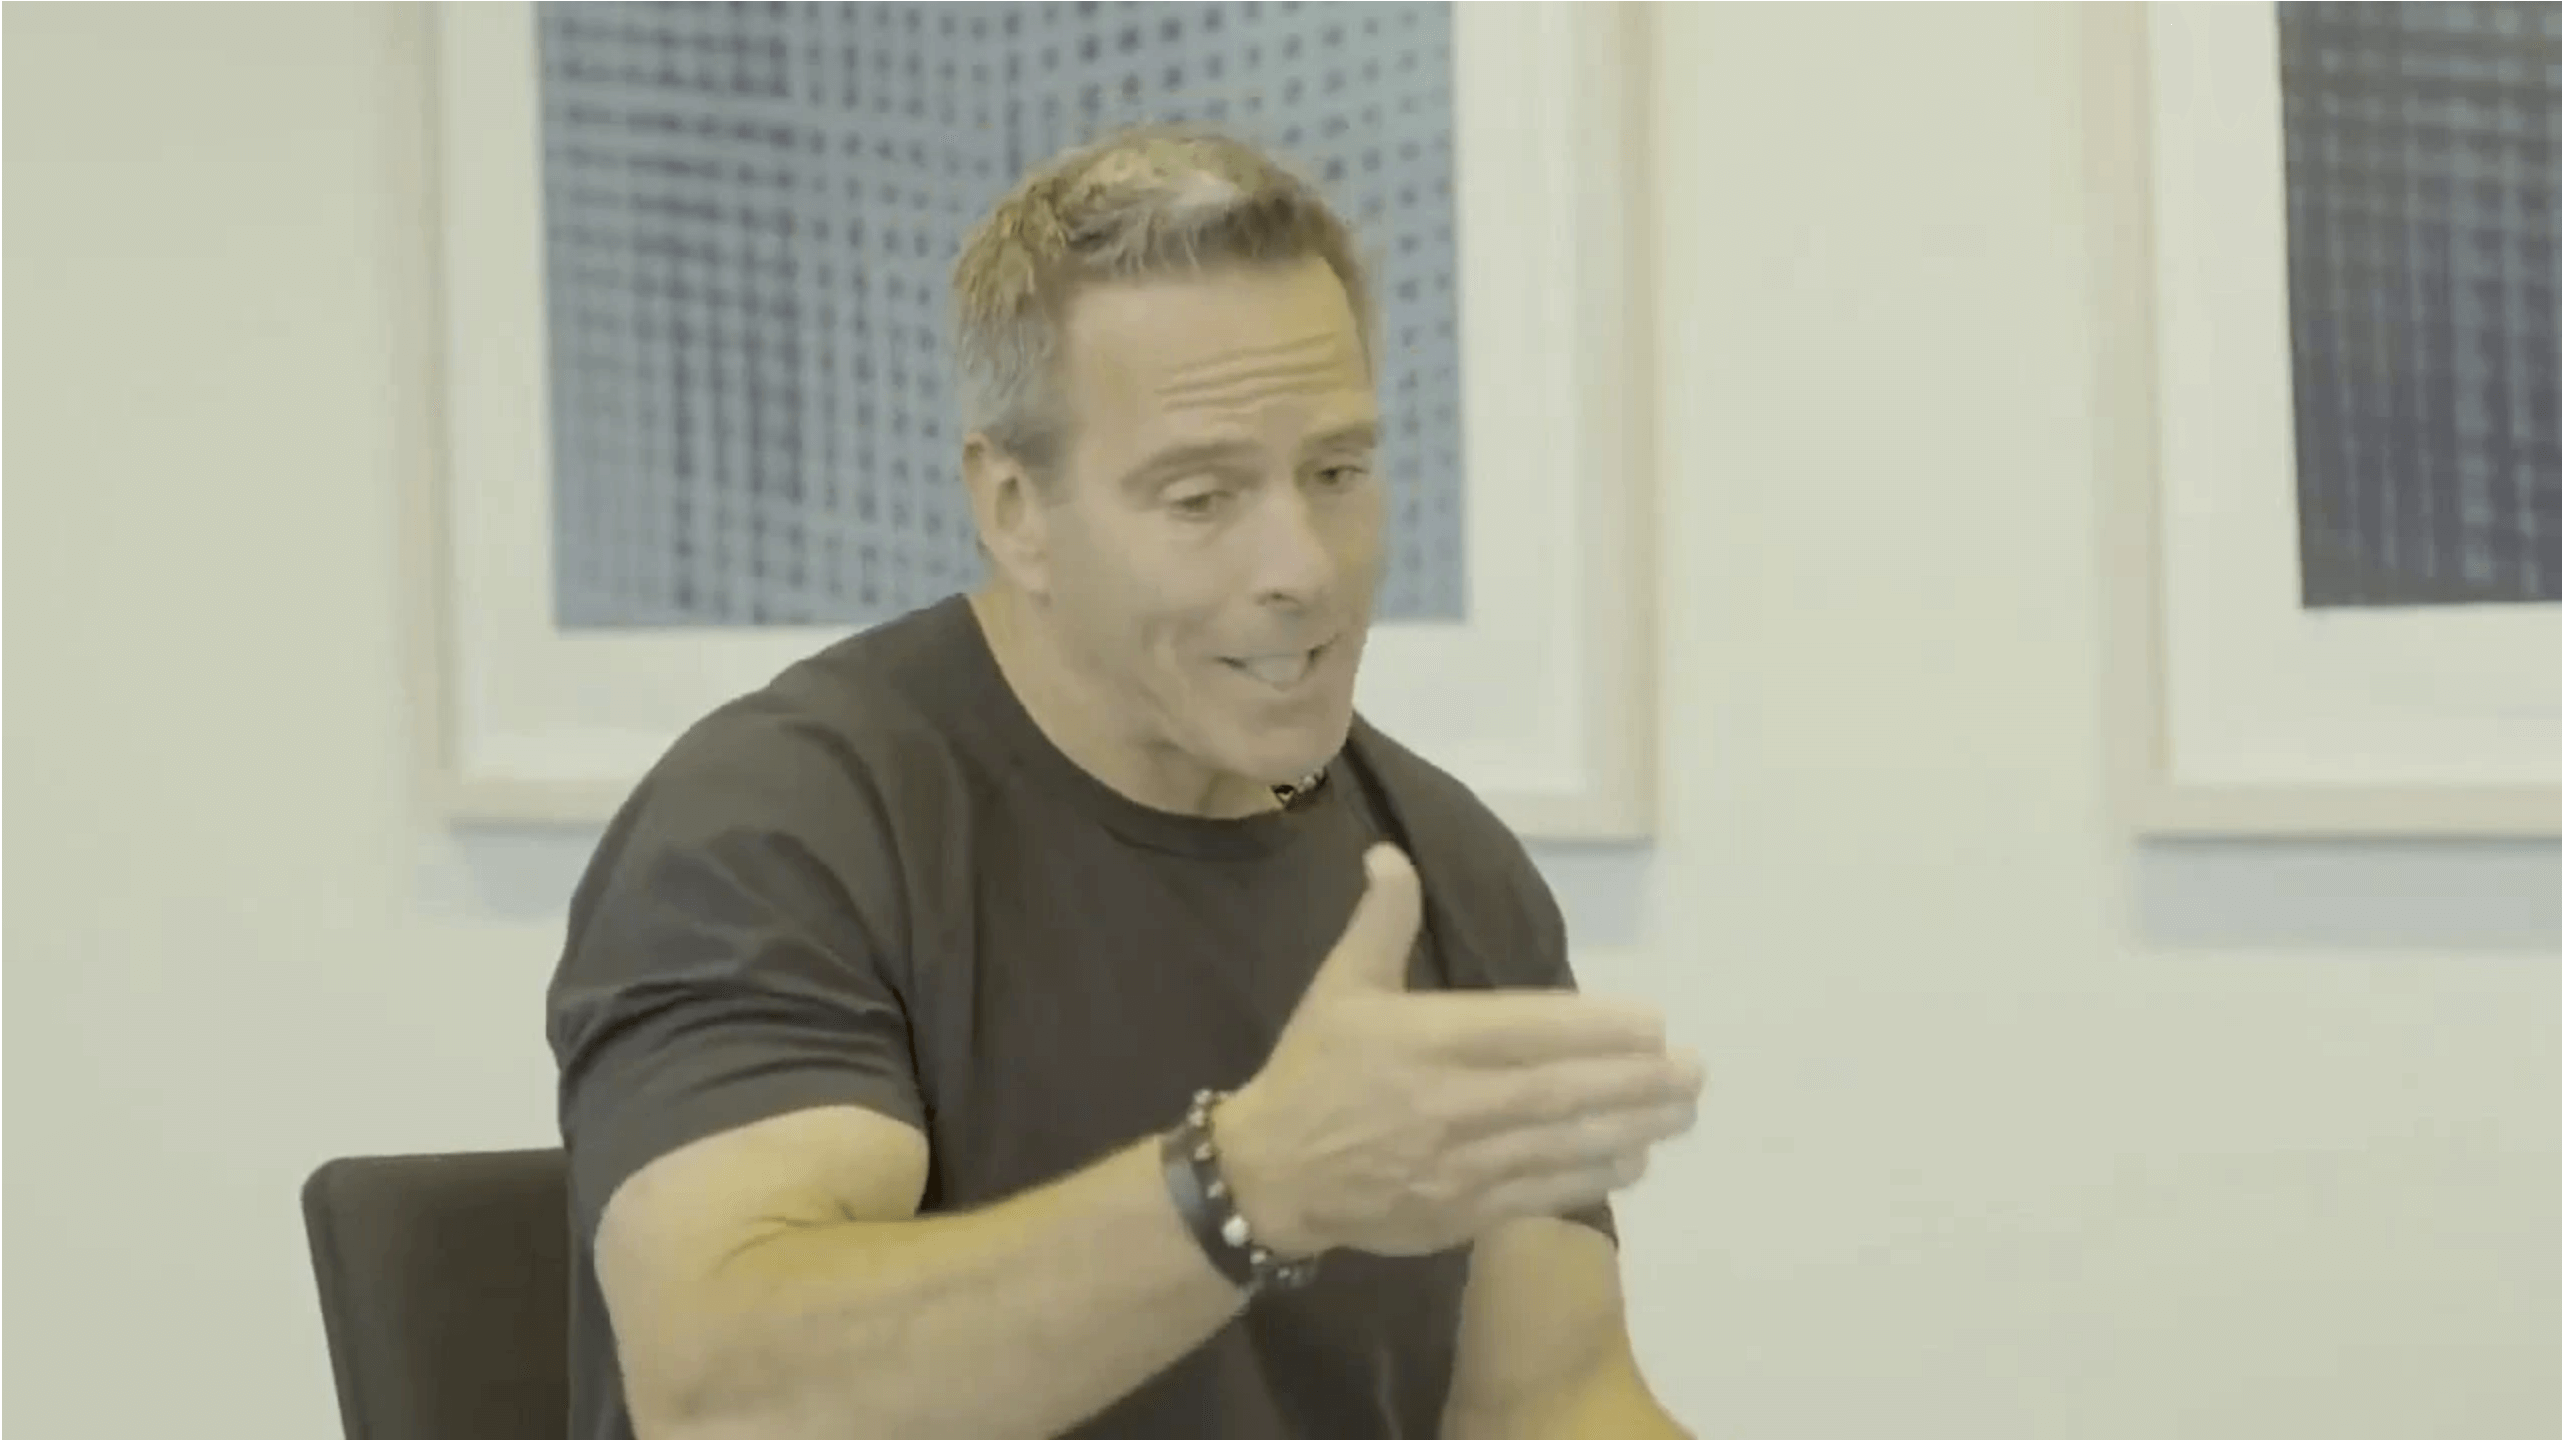 MagentoLive Europe 2019: 3 Questions with Gary Specter